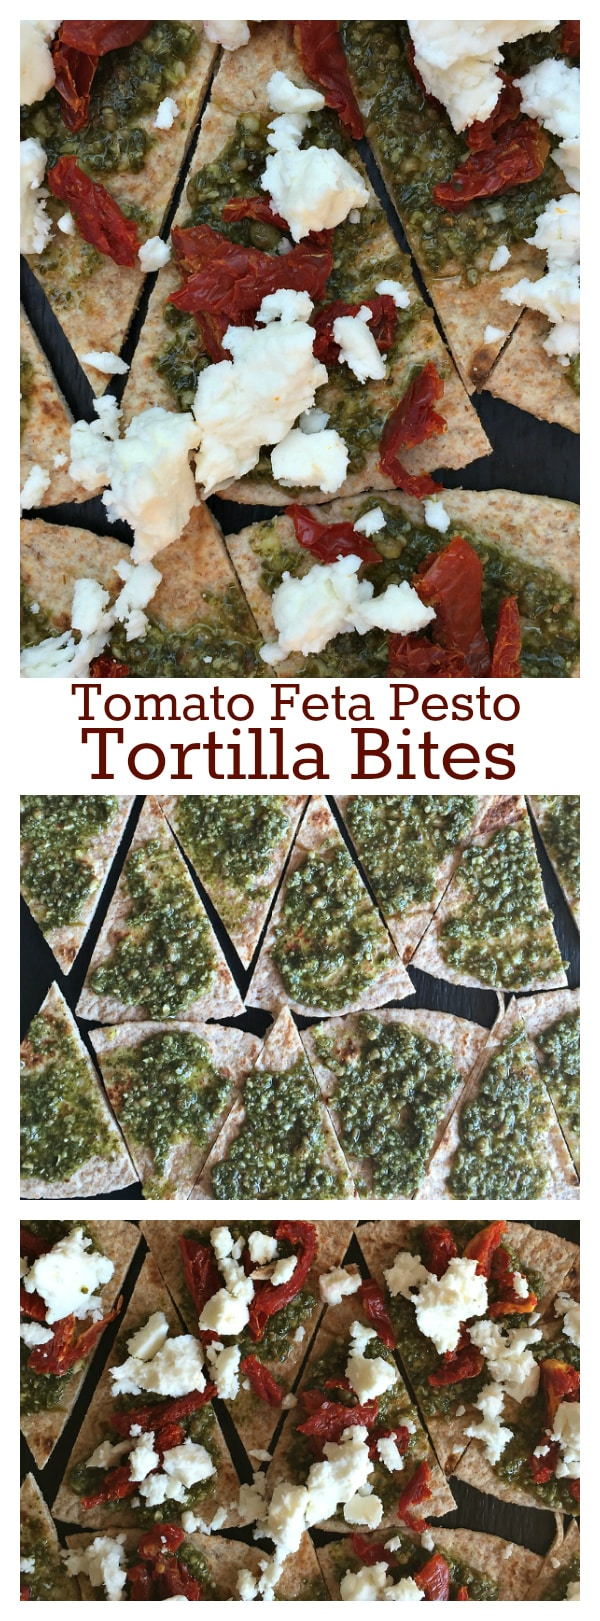 Tomato Feta Pesto Tortilla Bites - easy appetizer recipe